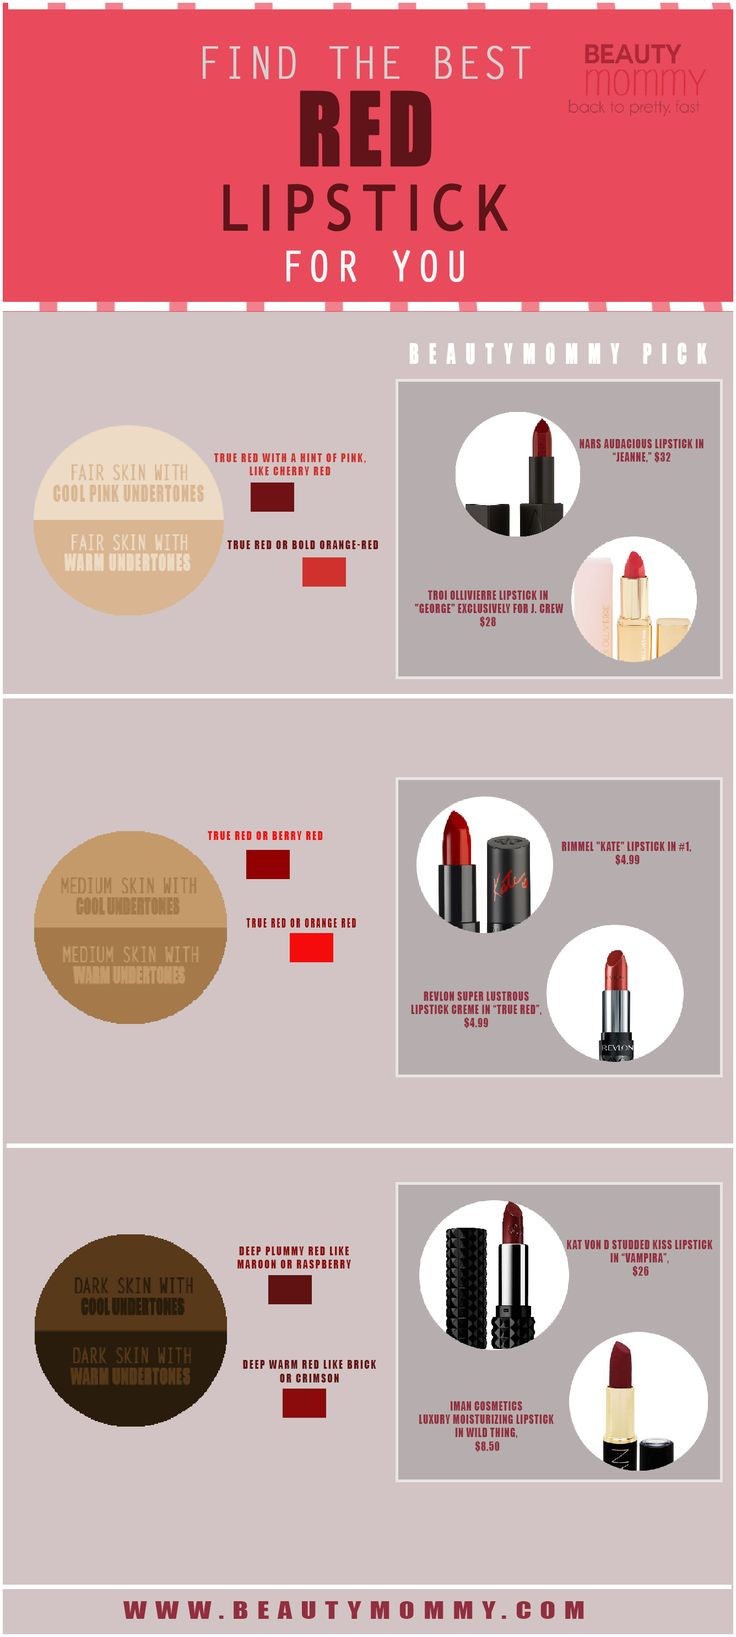 Find the Best Red Lipstick for your Skin Tone. Tips to find the best red lipstick for your complexion. http://beautymommy.com/ http://beautymommy.com/2015/01/find-best-red-lipstick-30-days-gorgeous-mom-style.html